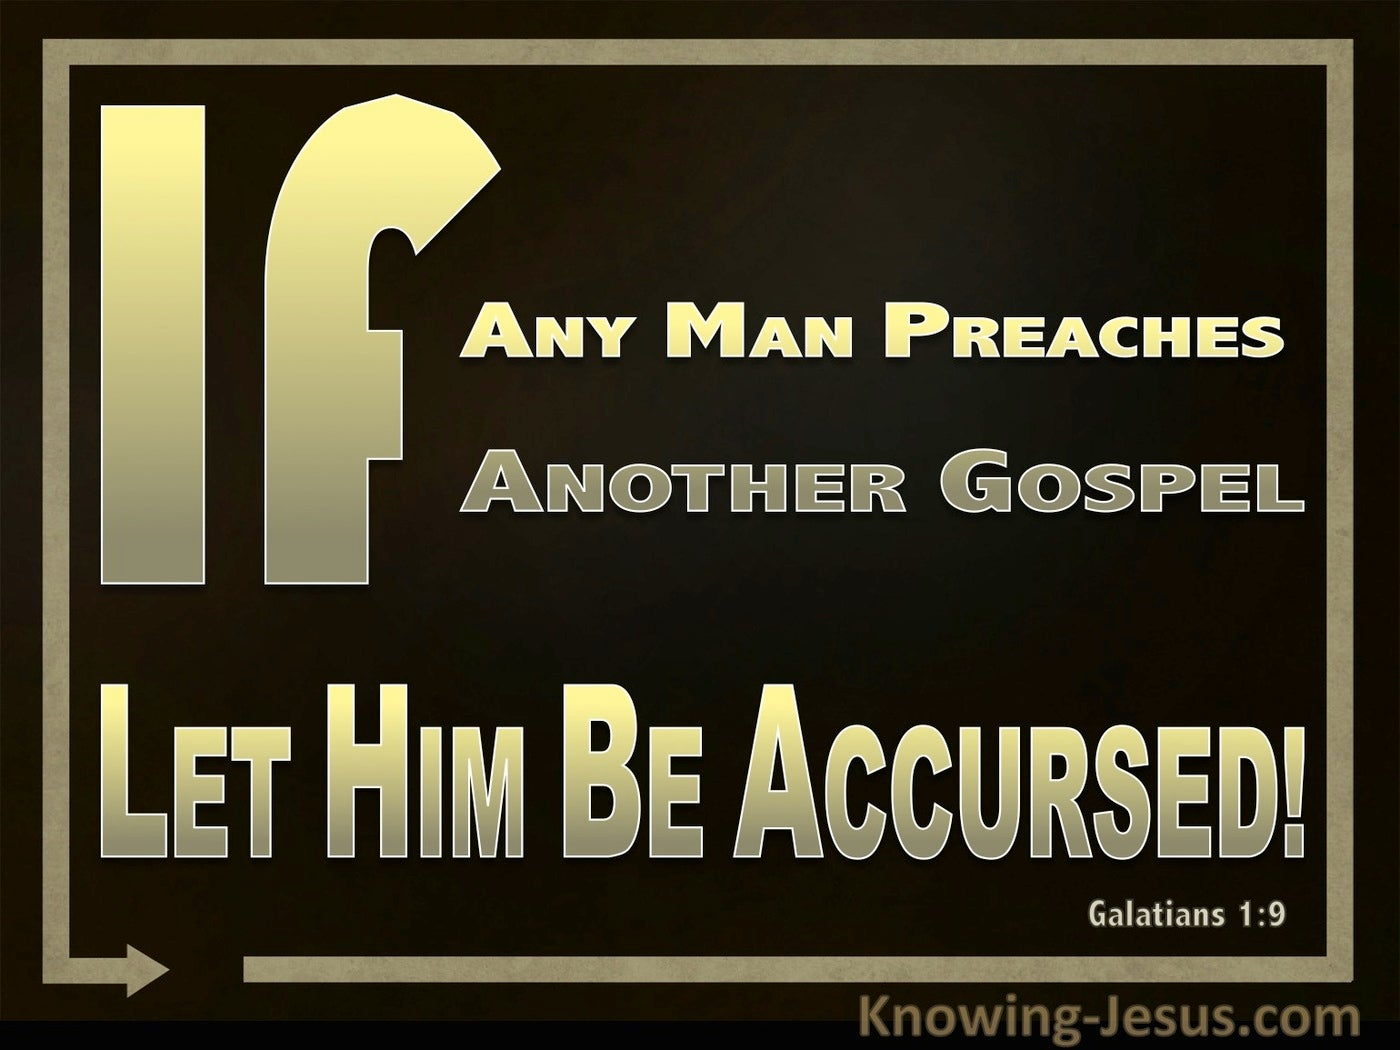 Galatians 1:9 Preaching Another Gospel Let Him Be Accursed (gold)